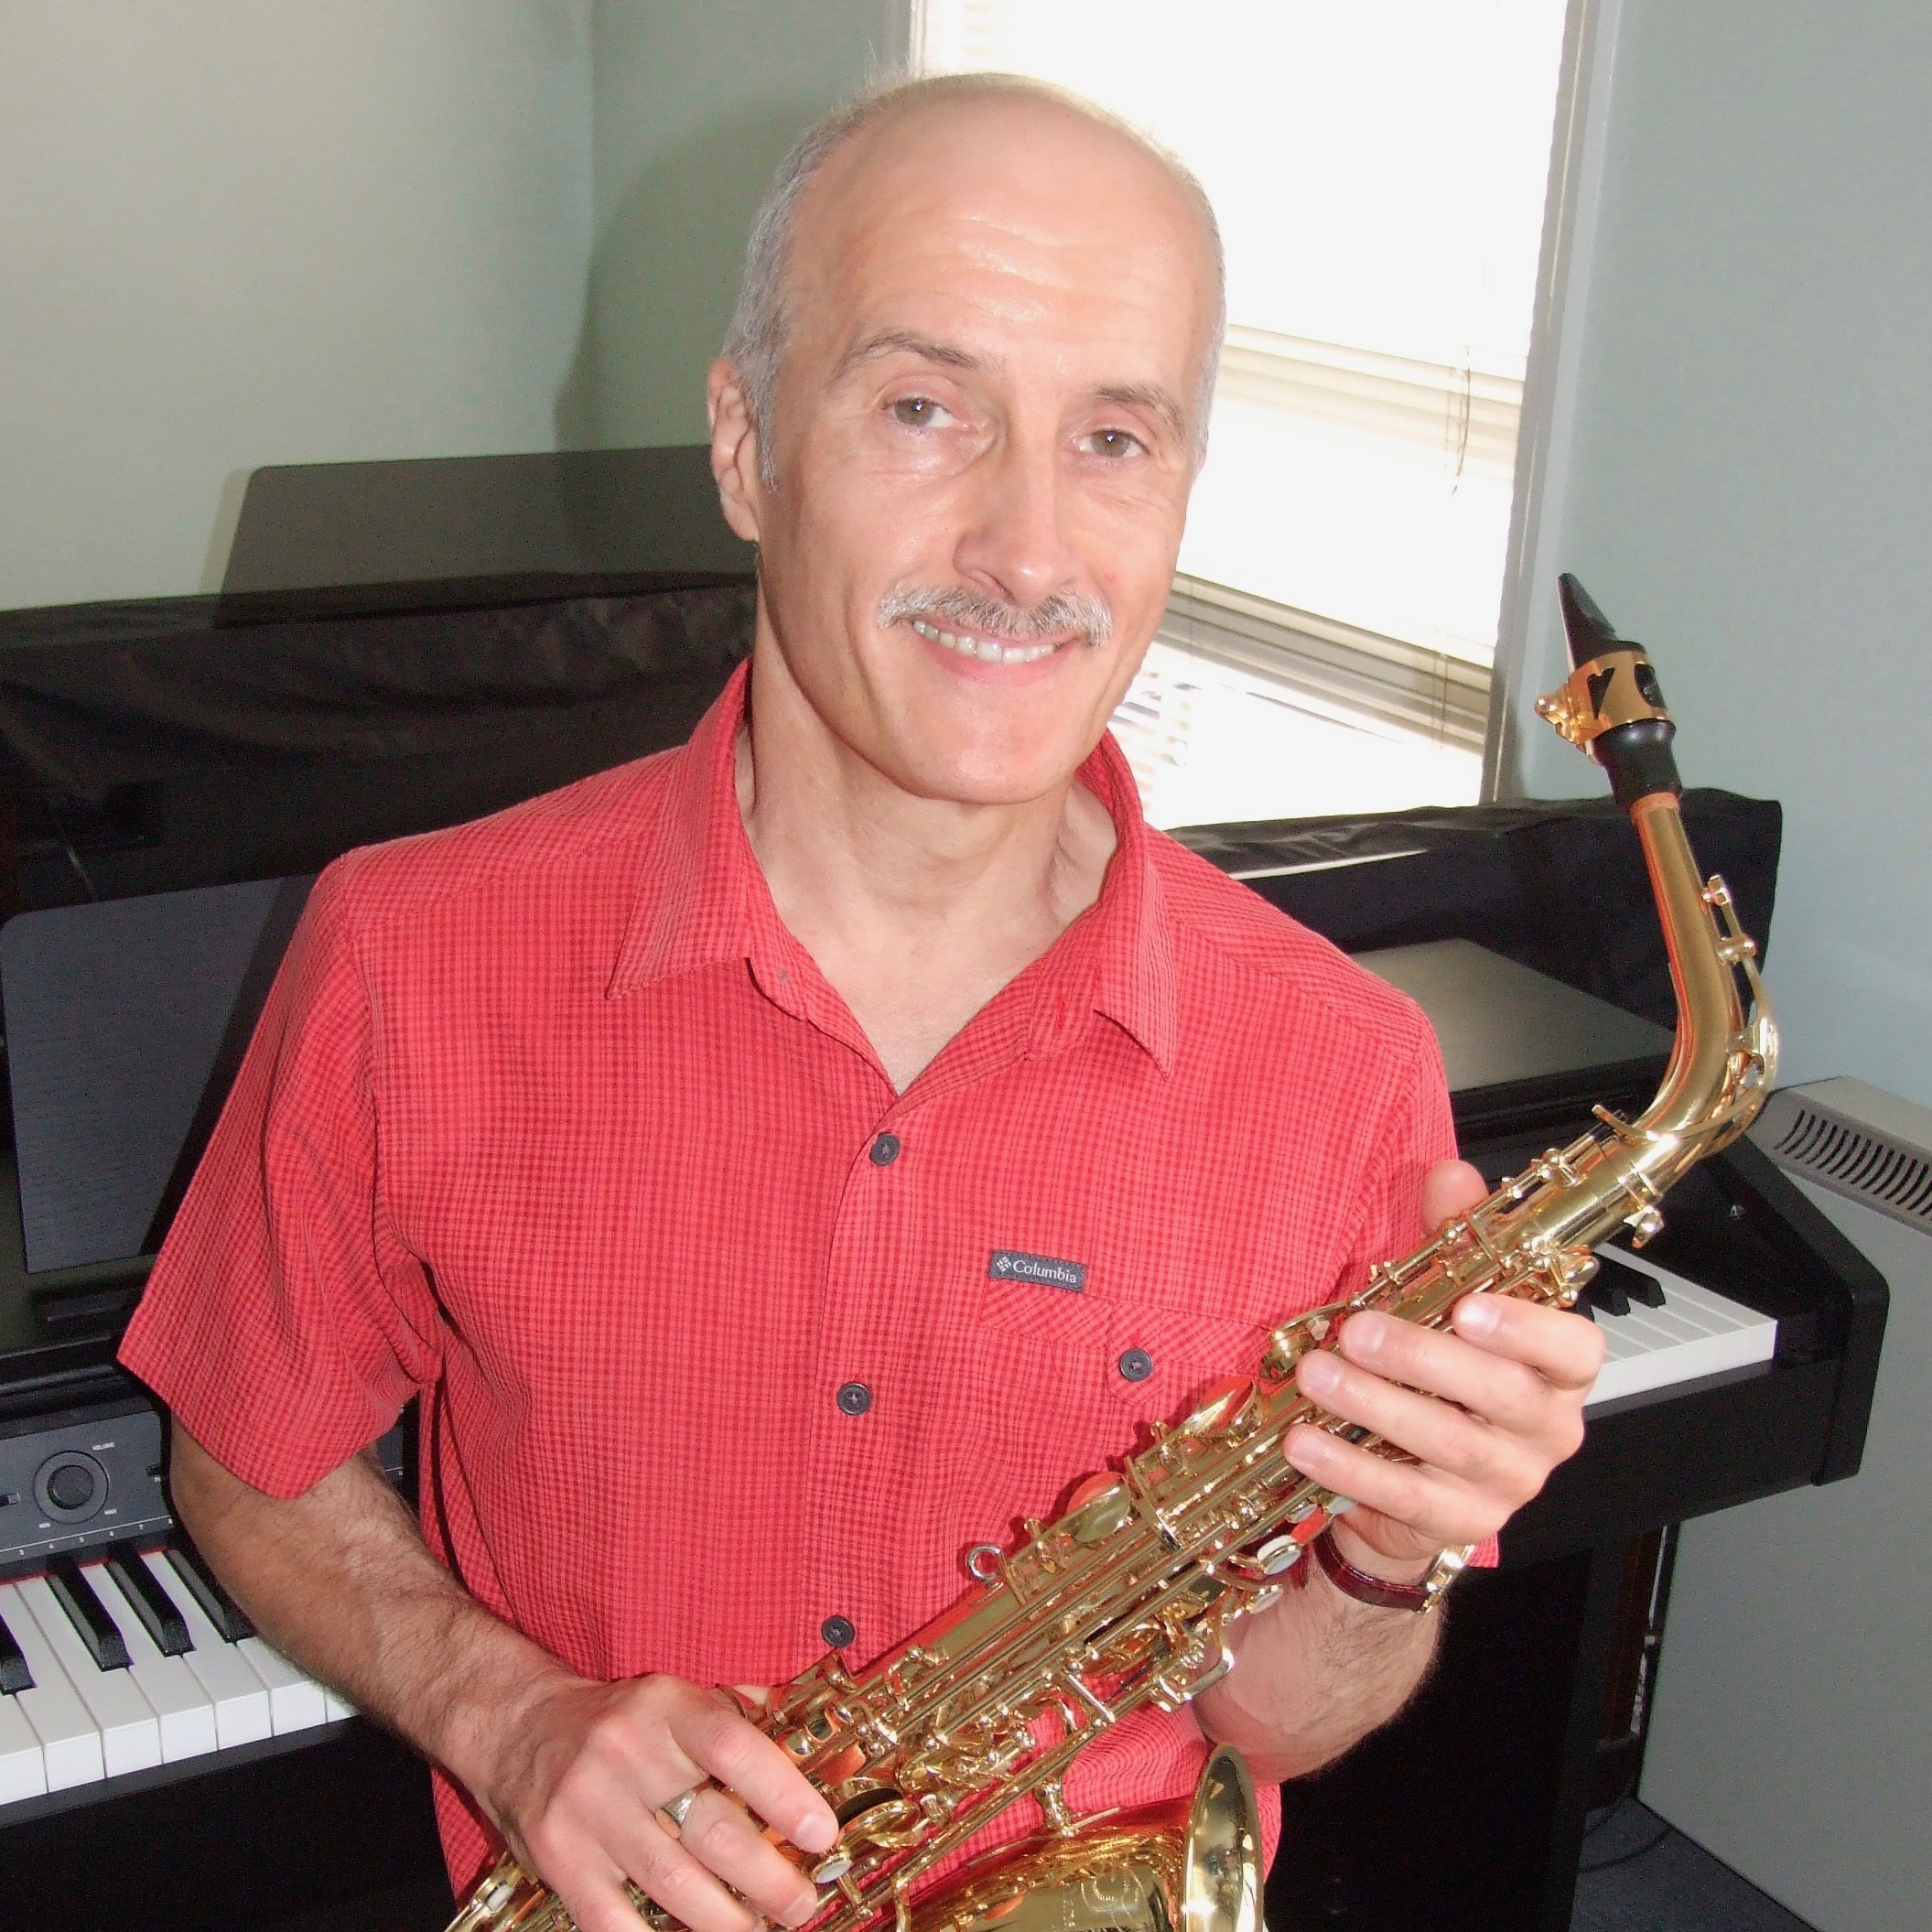 Darrell Priestley with saxophone